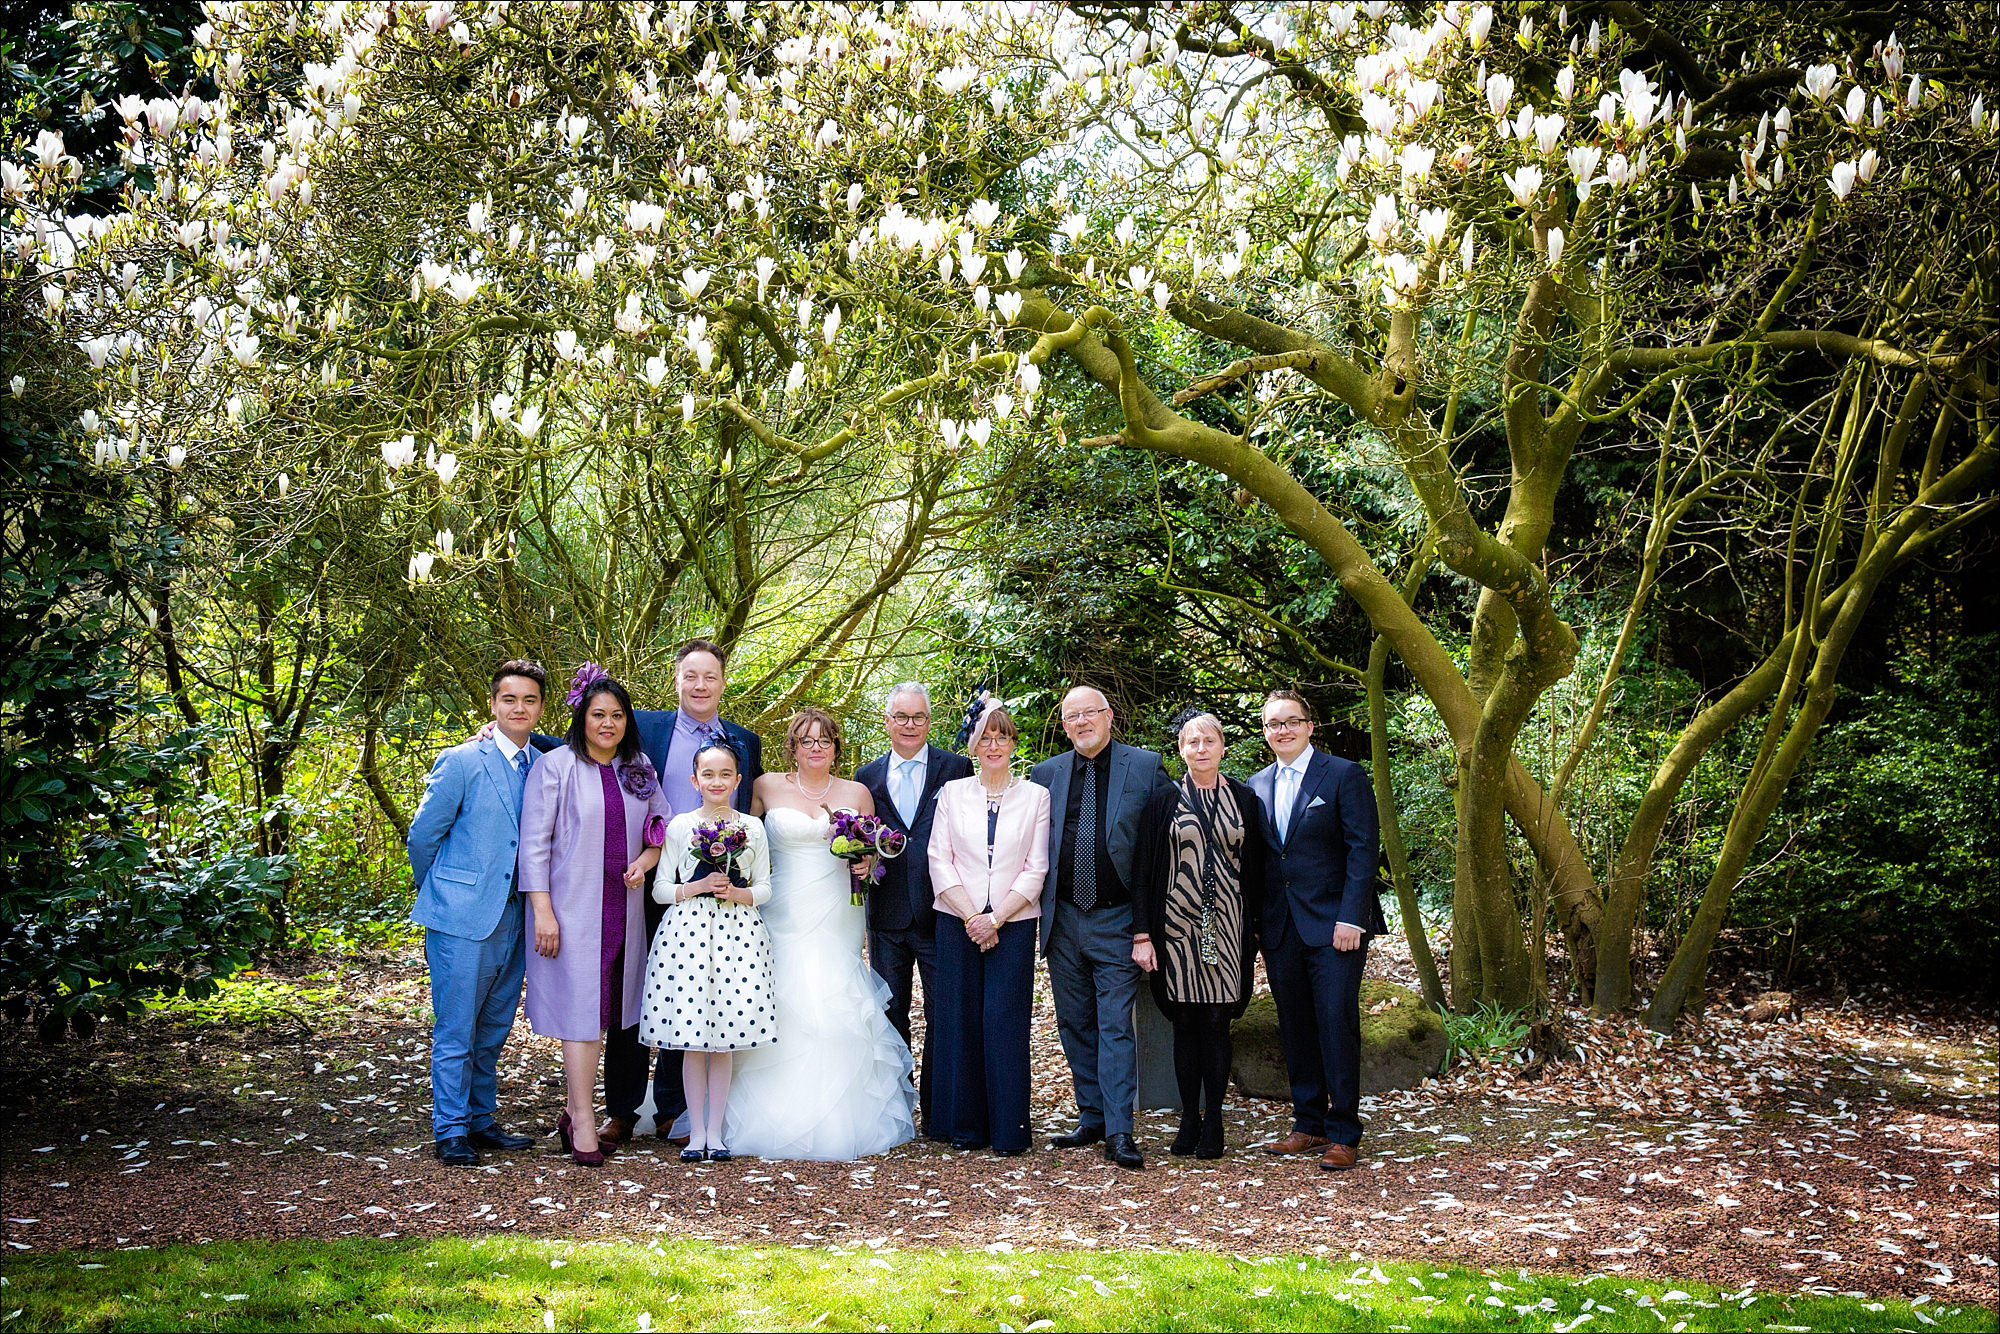 wedding photographer dublin david duignan photography real weddings Ireland 65